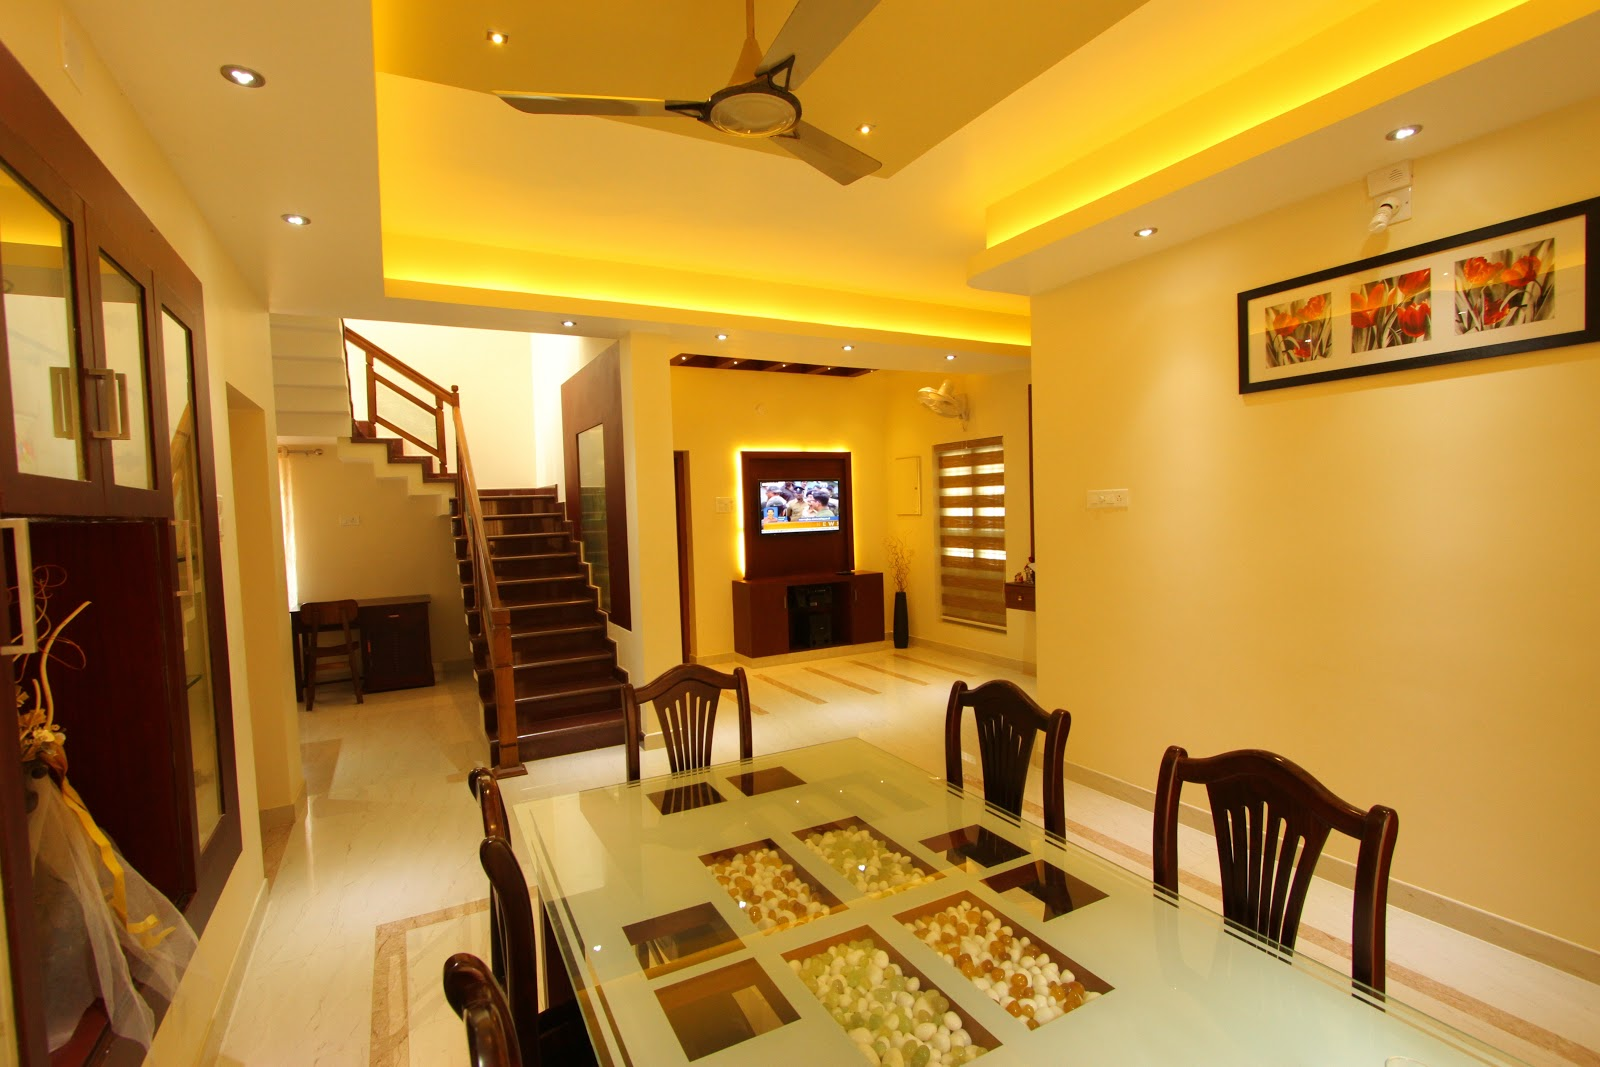 Shilpakala interiors award winning home interior design for Home interior